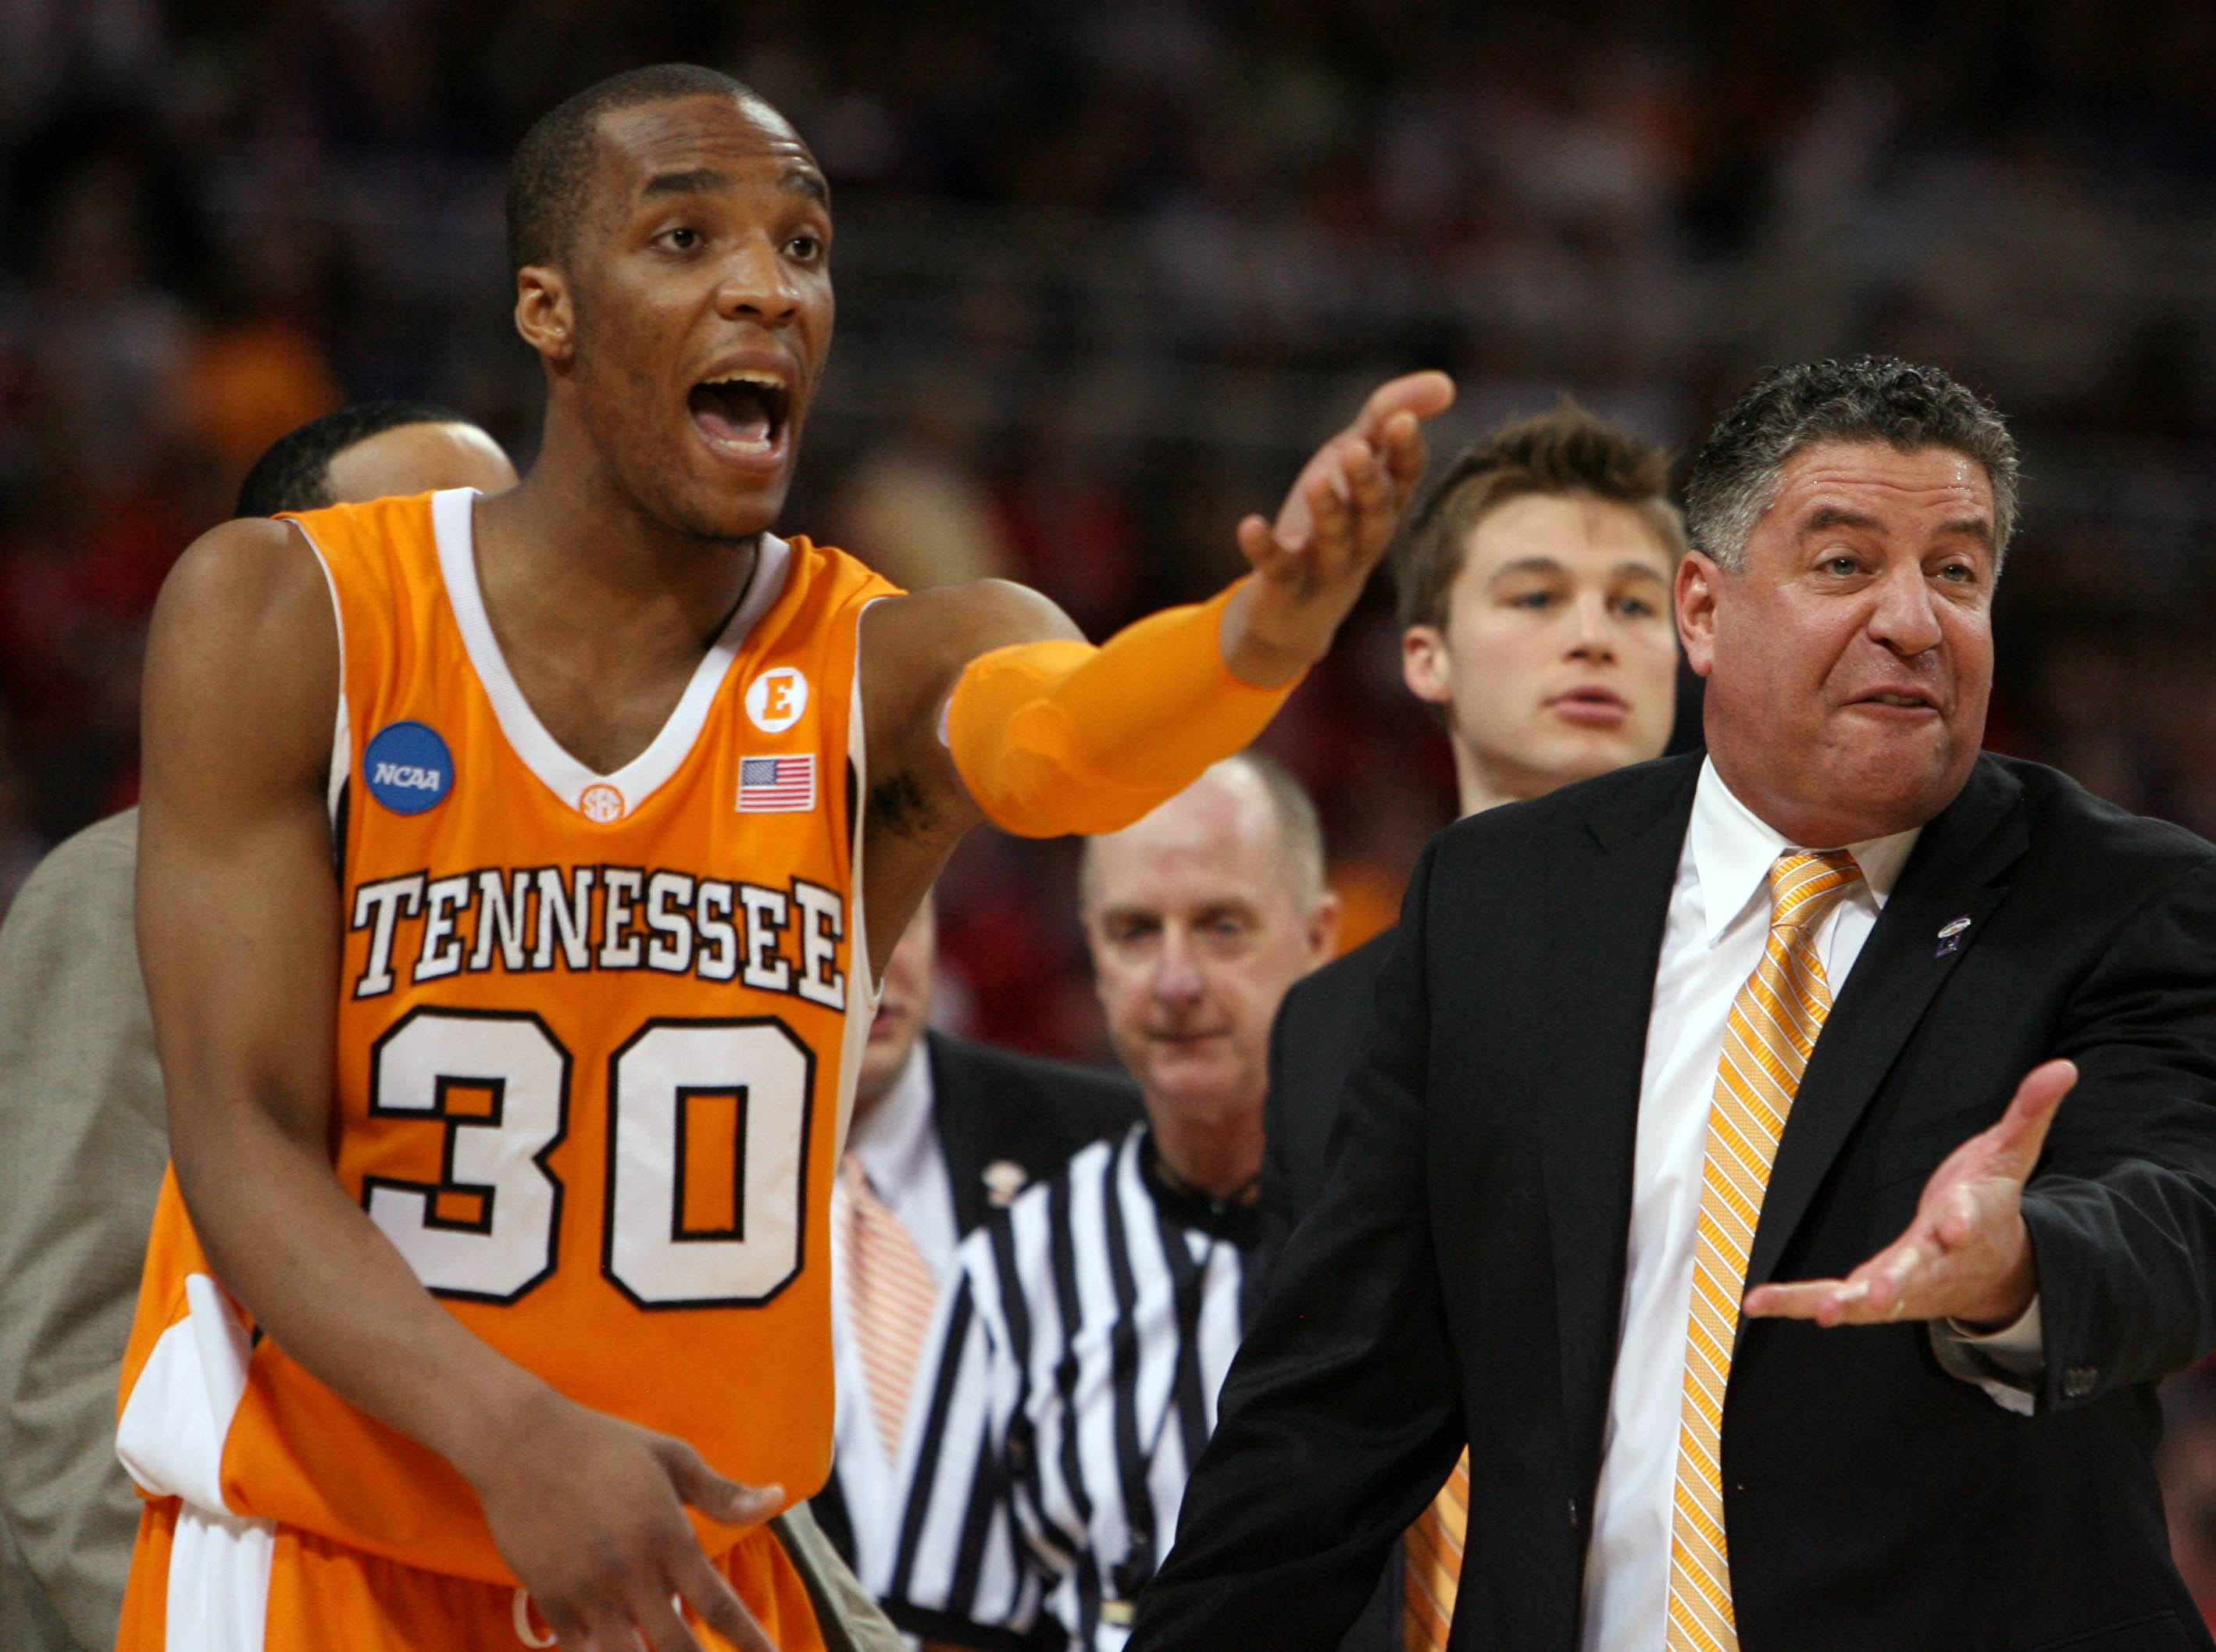 Tennessee's J.P. Prince and coach Bruce Pearl react to a foul called against the Vols during the game against Ohio State at the NCAA tournament Sweet Sixteen at the Edward Jones Dome in St. Louis, Mo., Friday, Mar. 26, 2010.